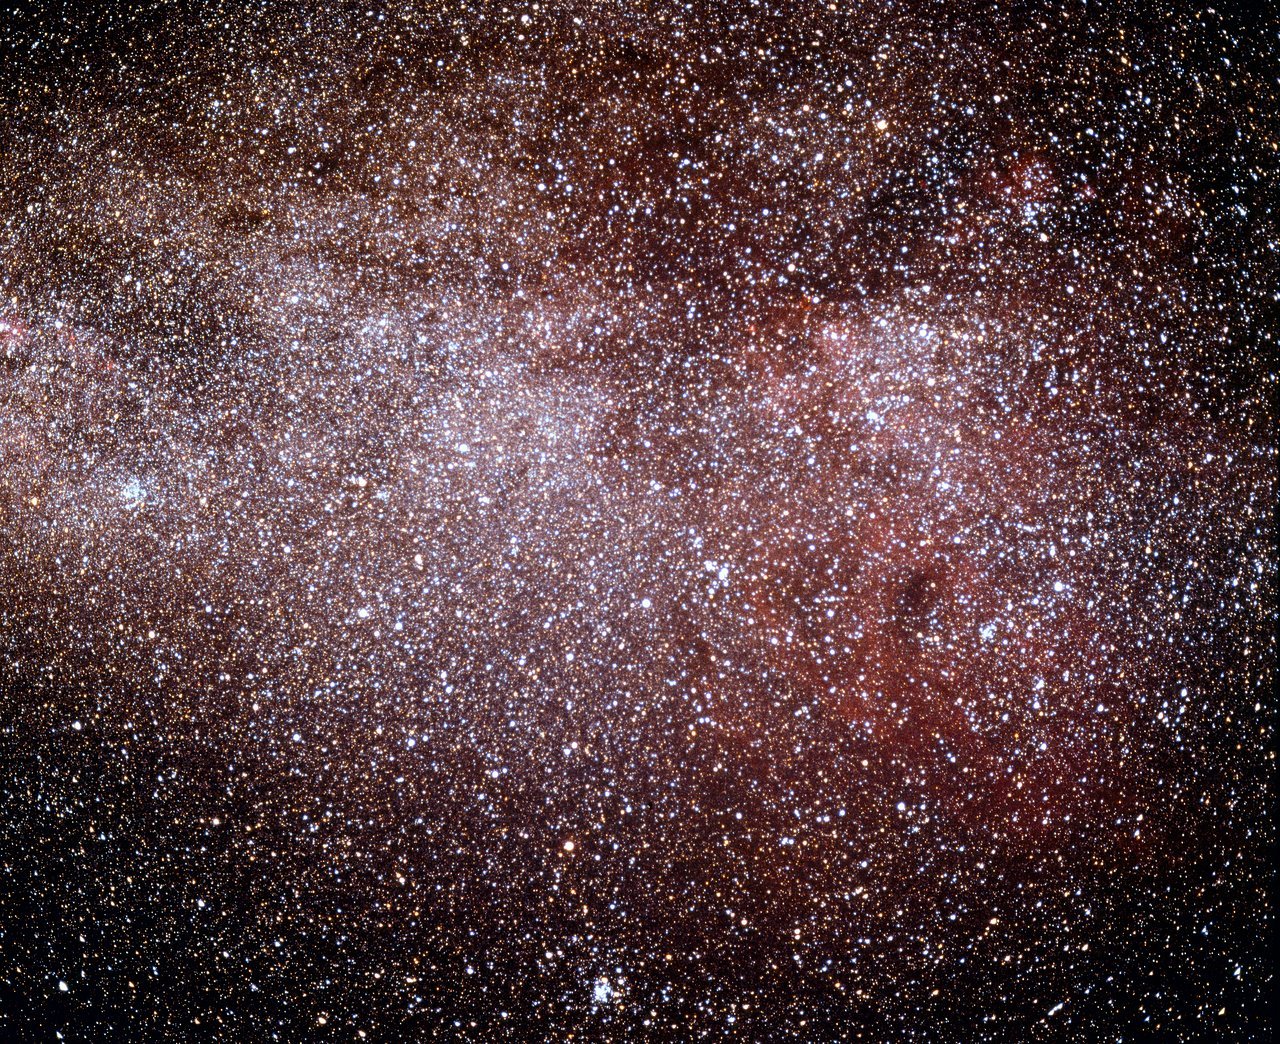 The Gum Nebula in the Milky Way | ESO